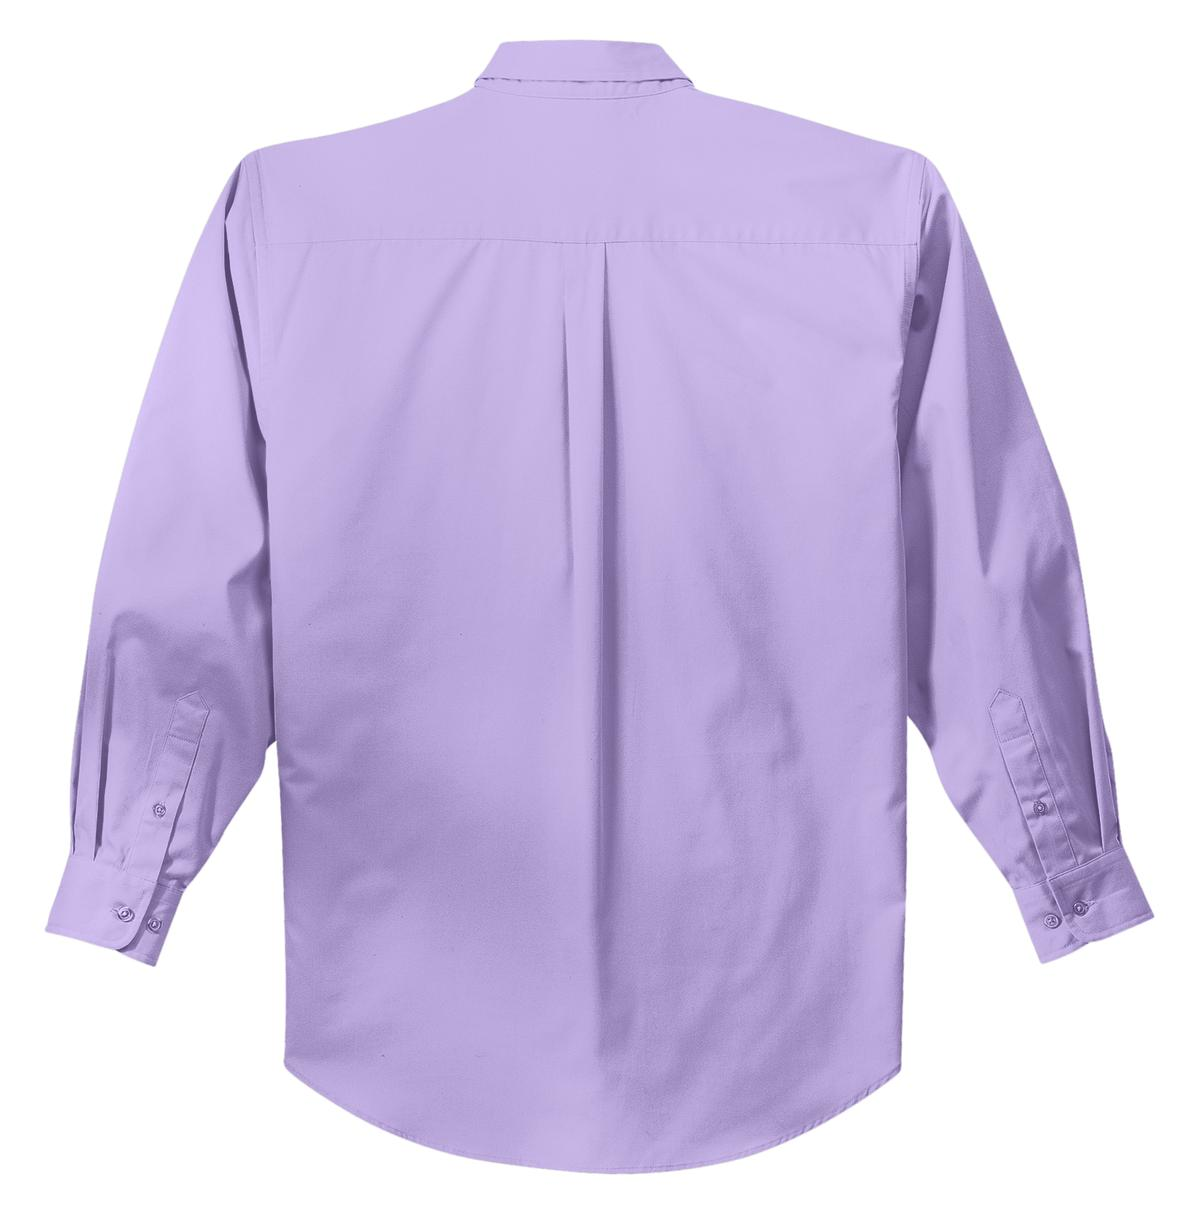 Mafoose Men's Tall Long Sleeve Easy Care Shirt Bright Lavender-Back